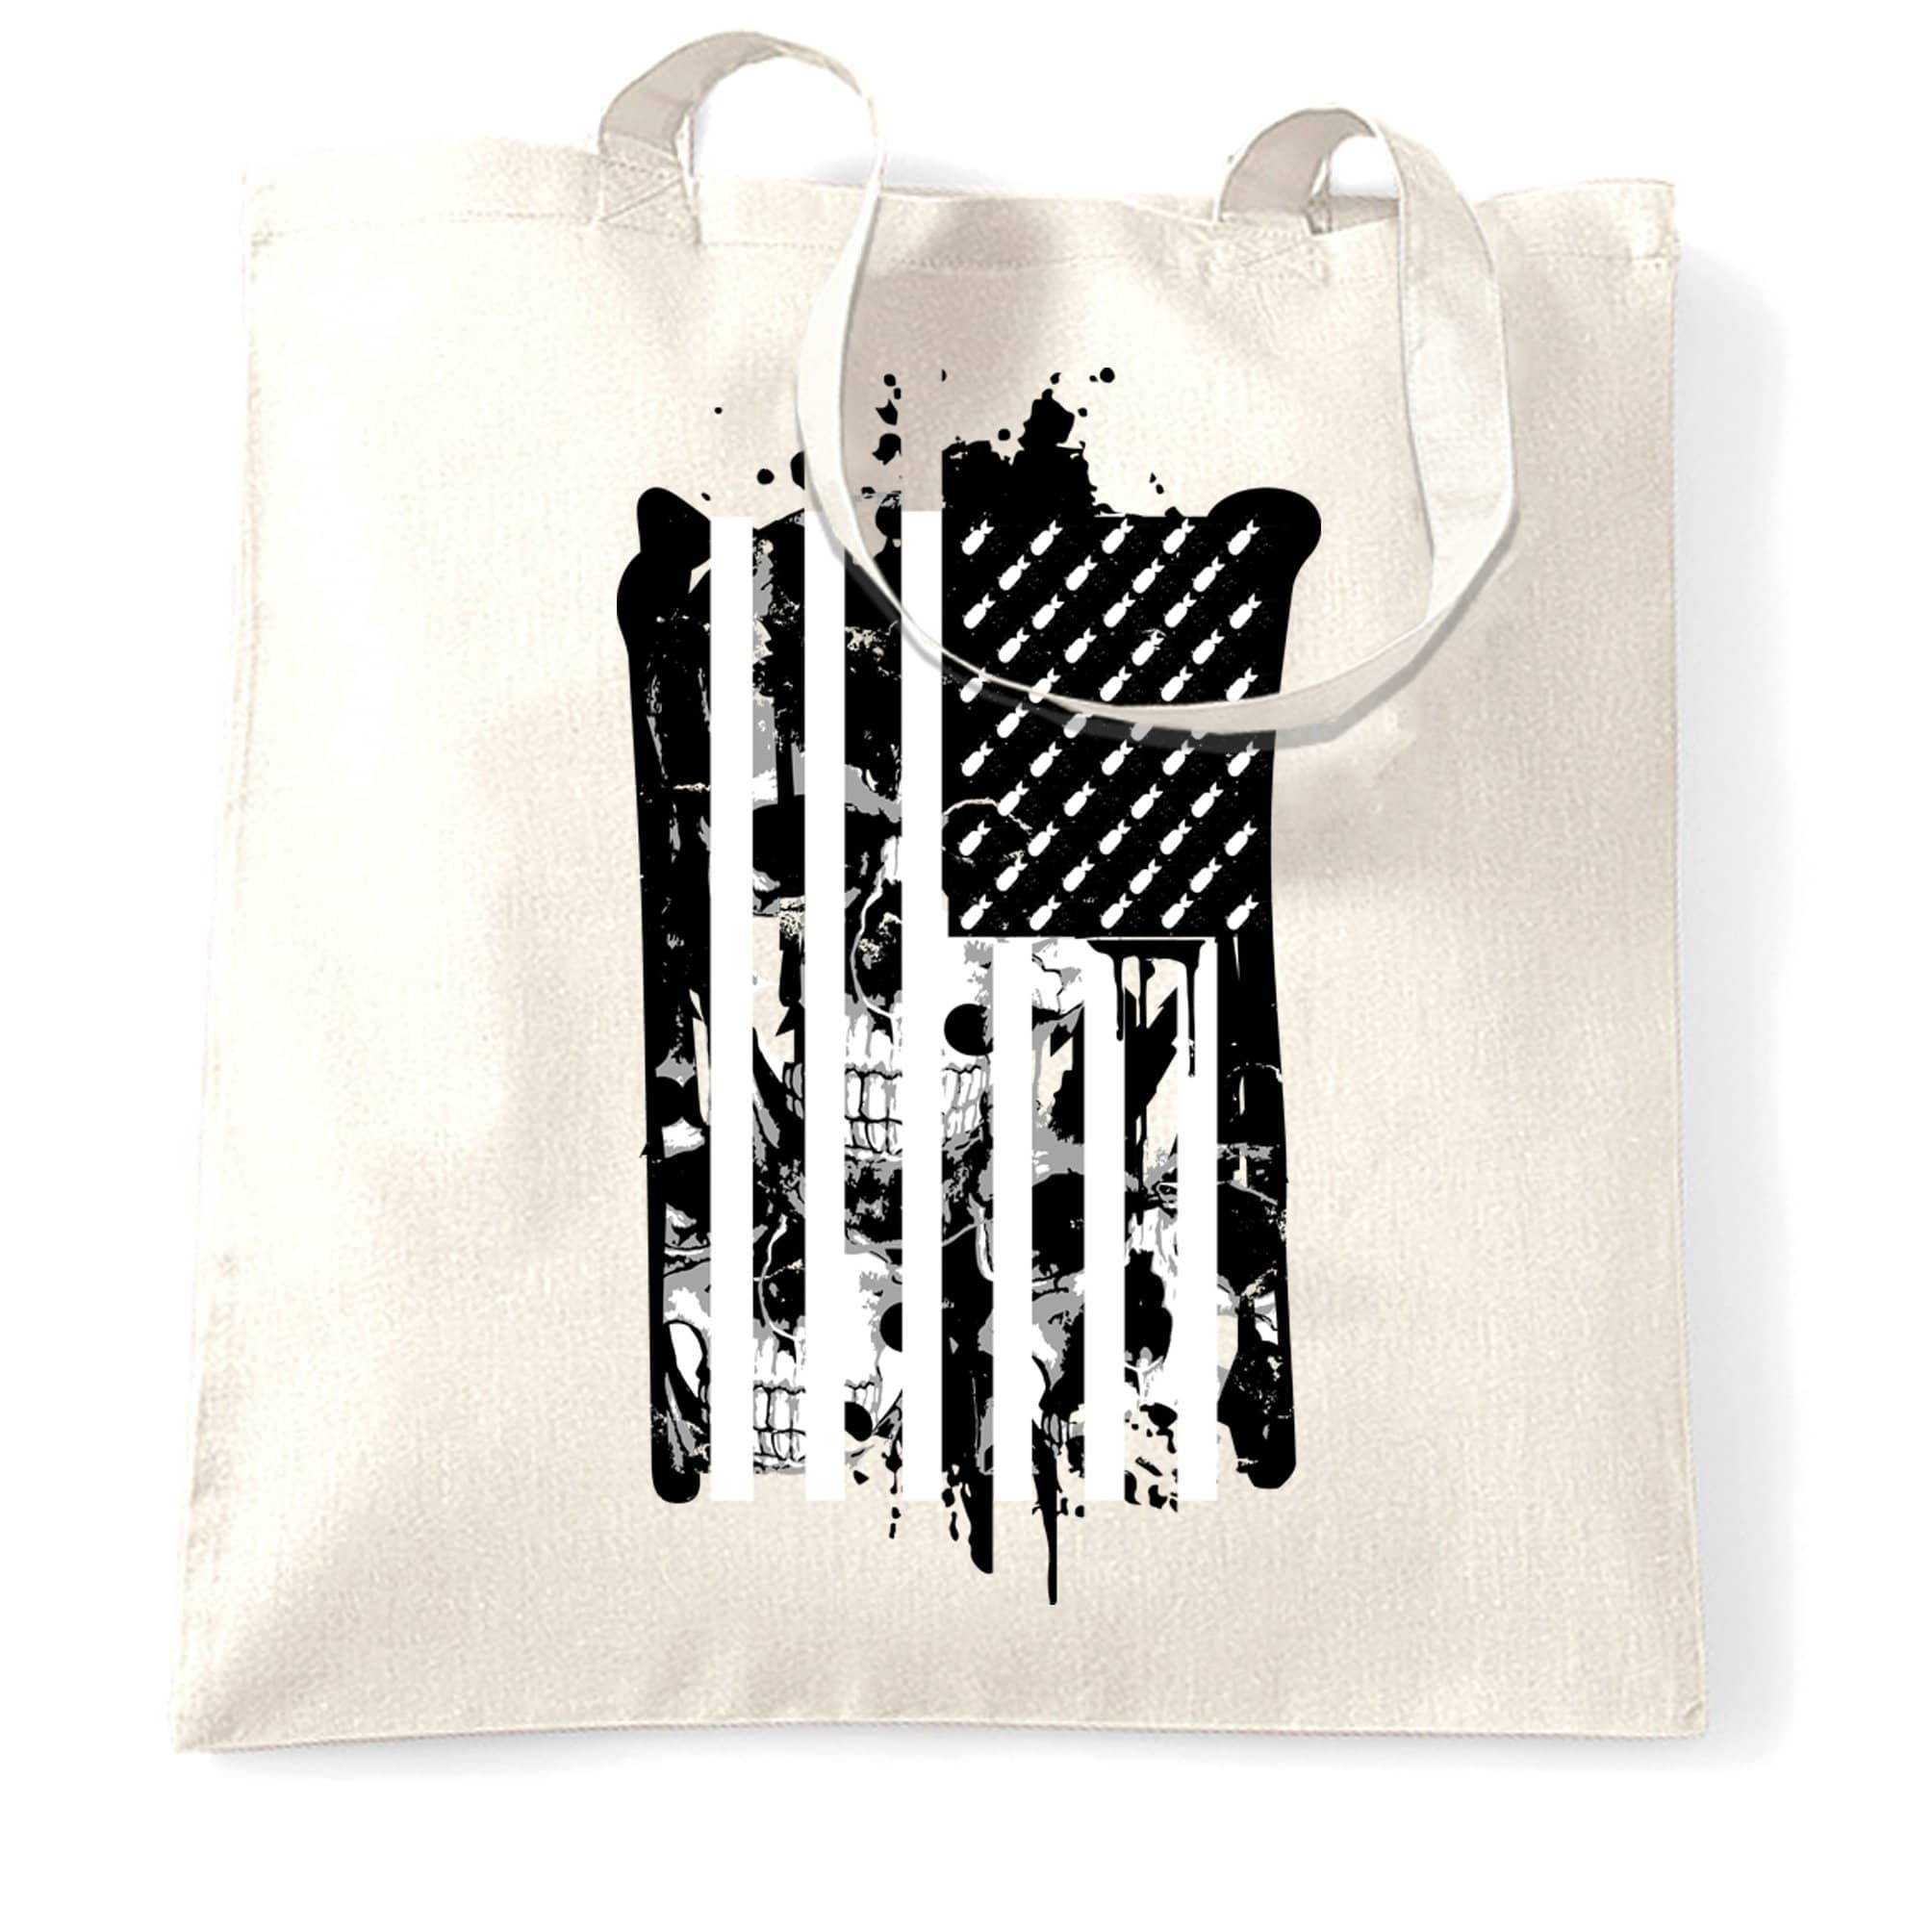 American Flag Tote Bag Stylised with Skulls and Bombs